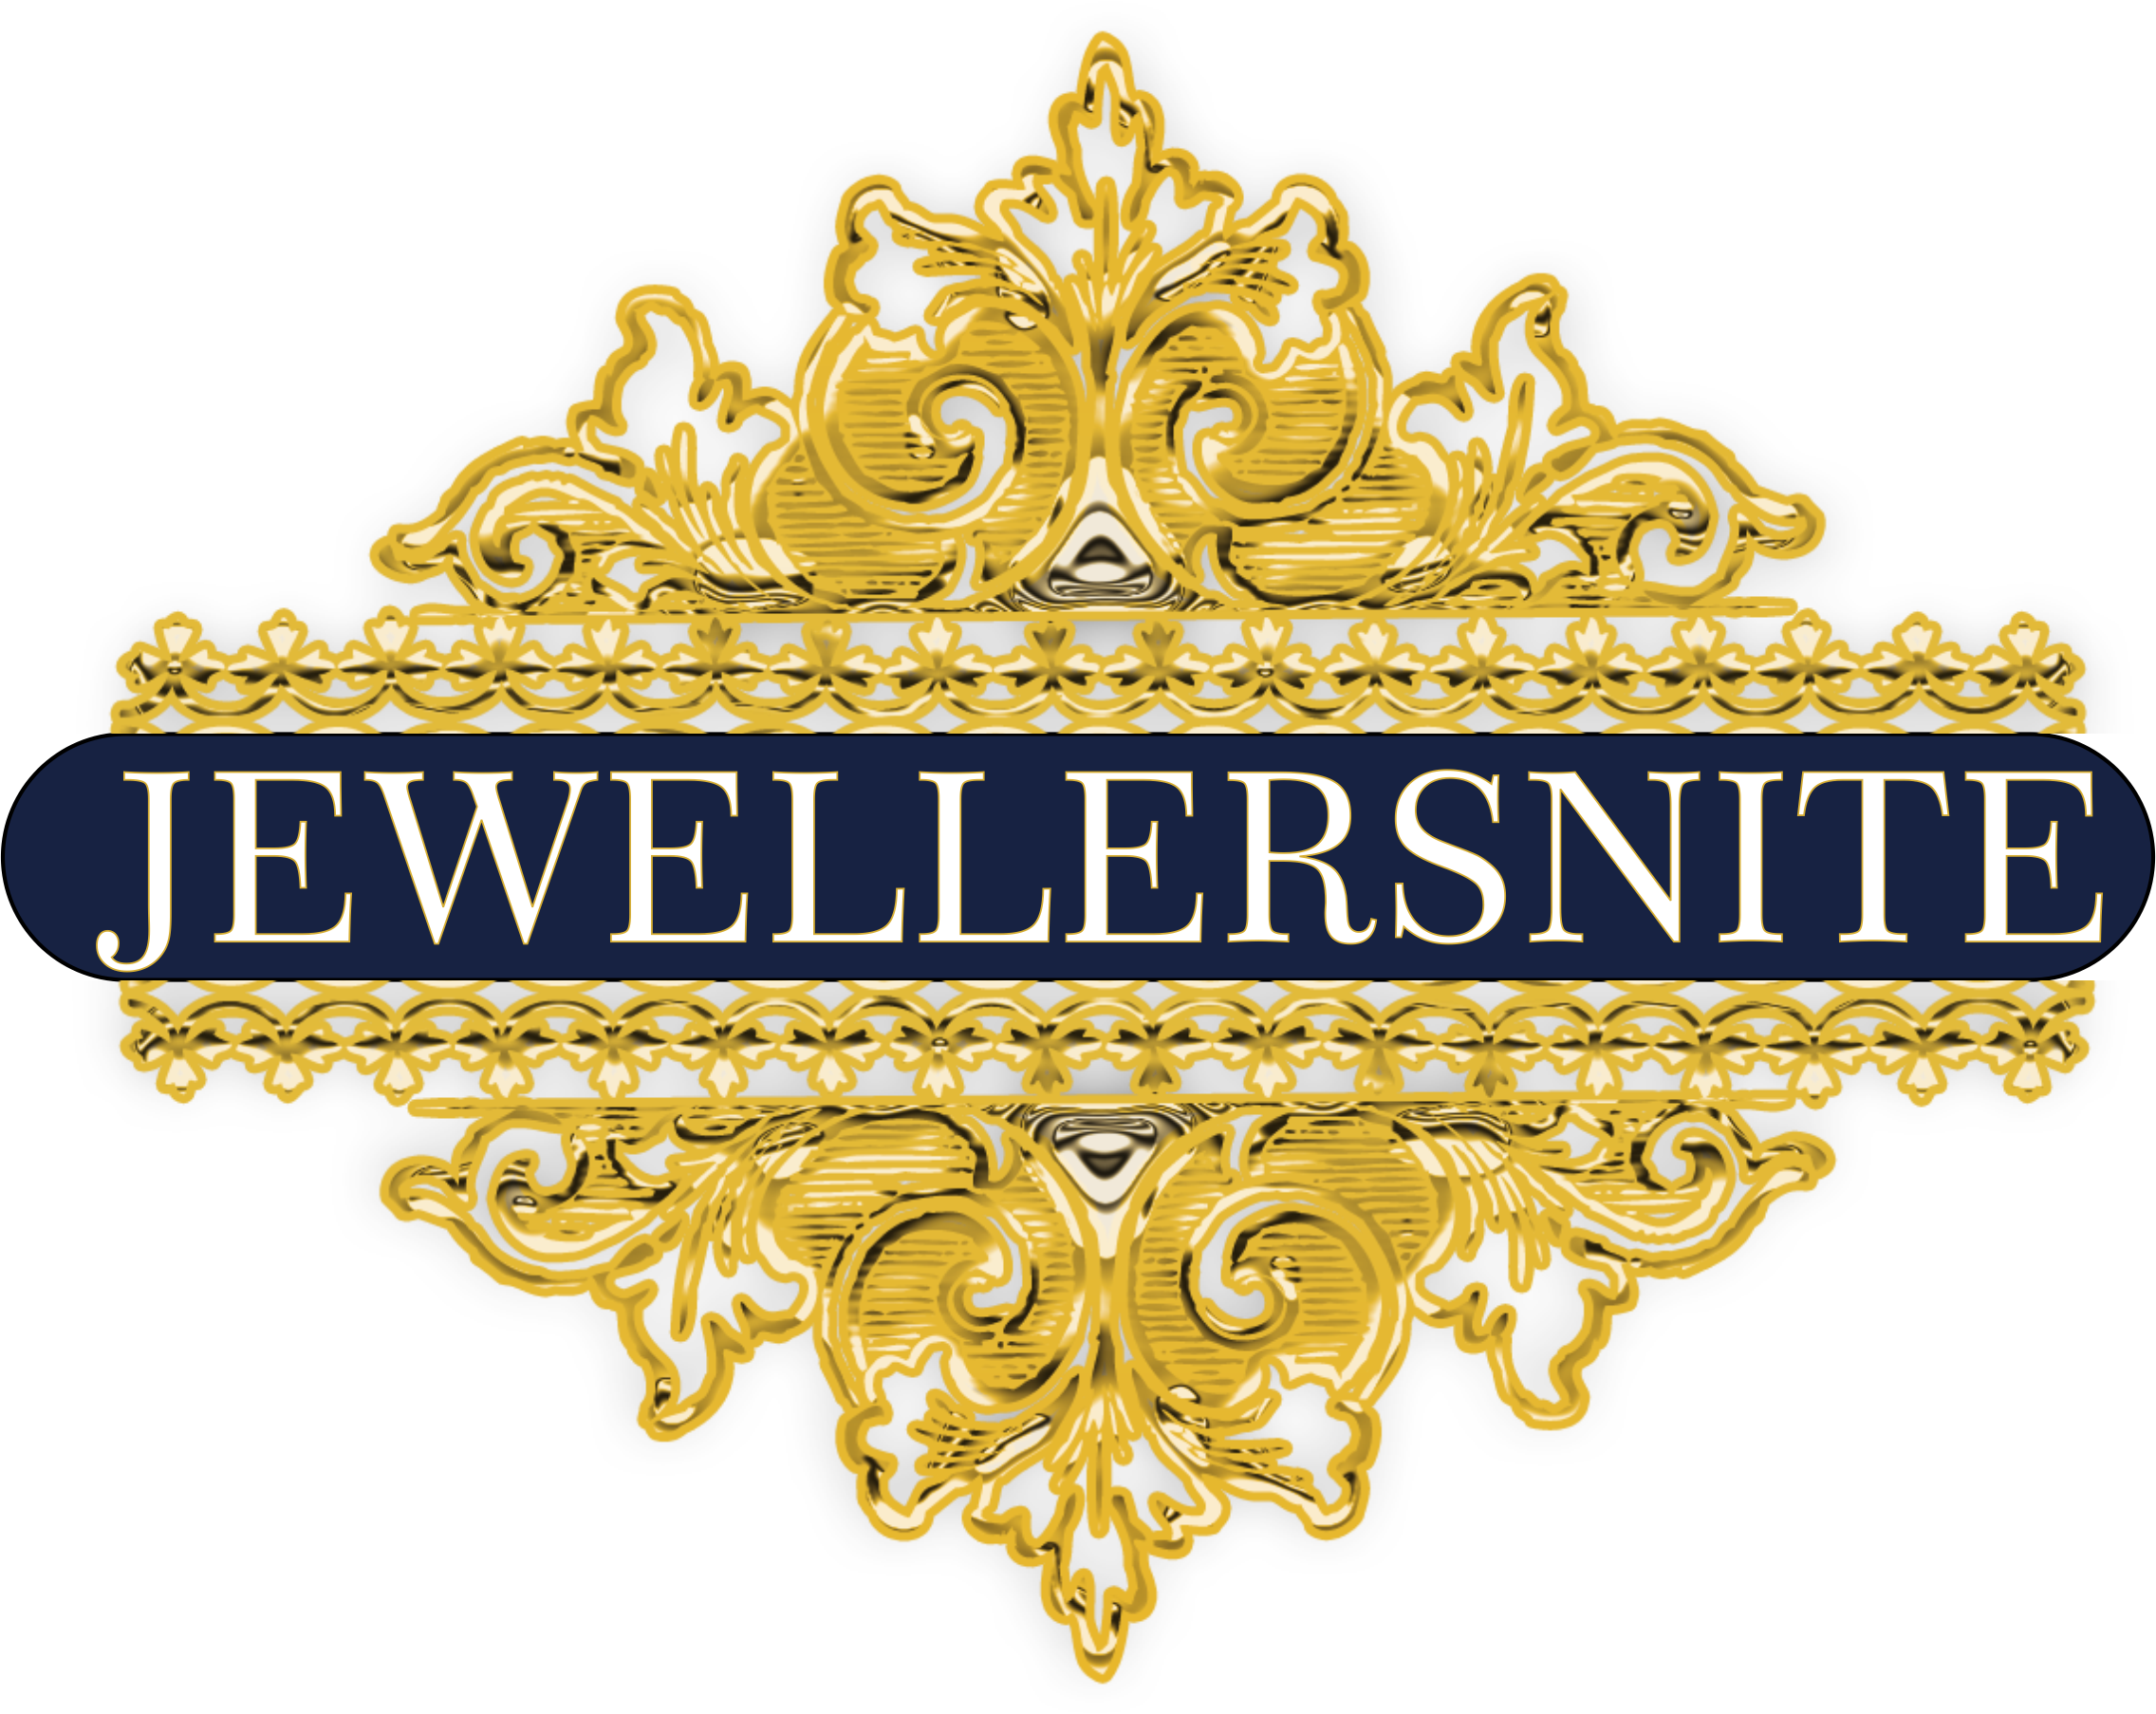 Jewellersnite